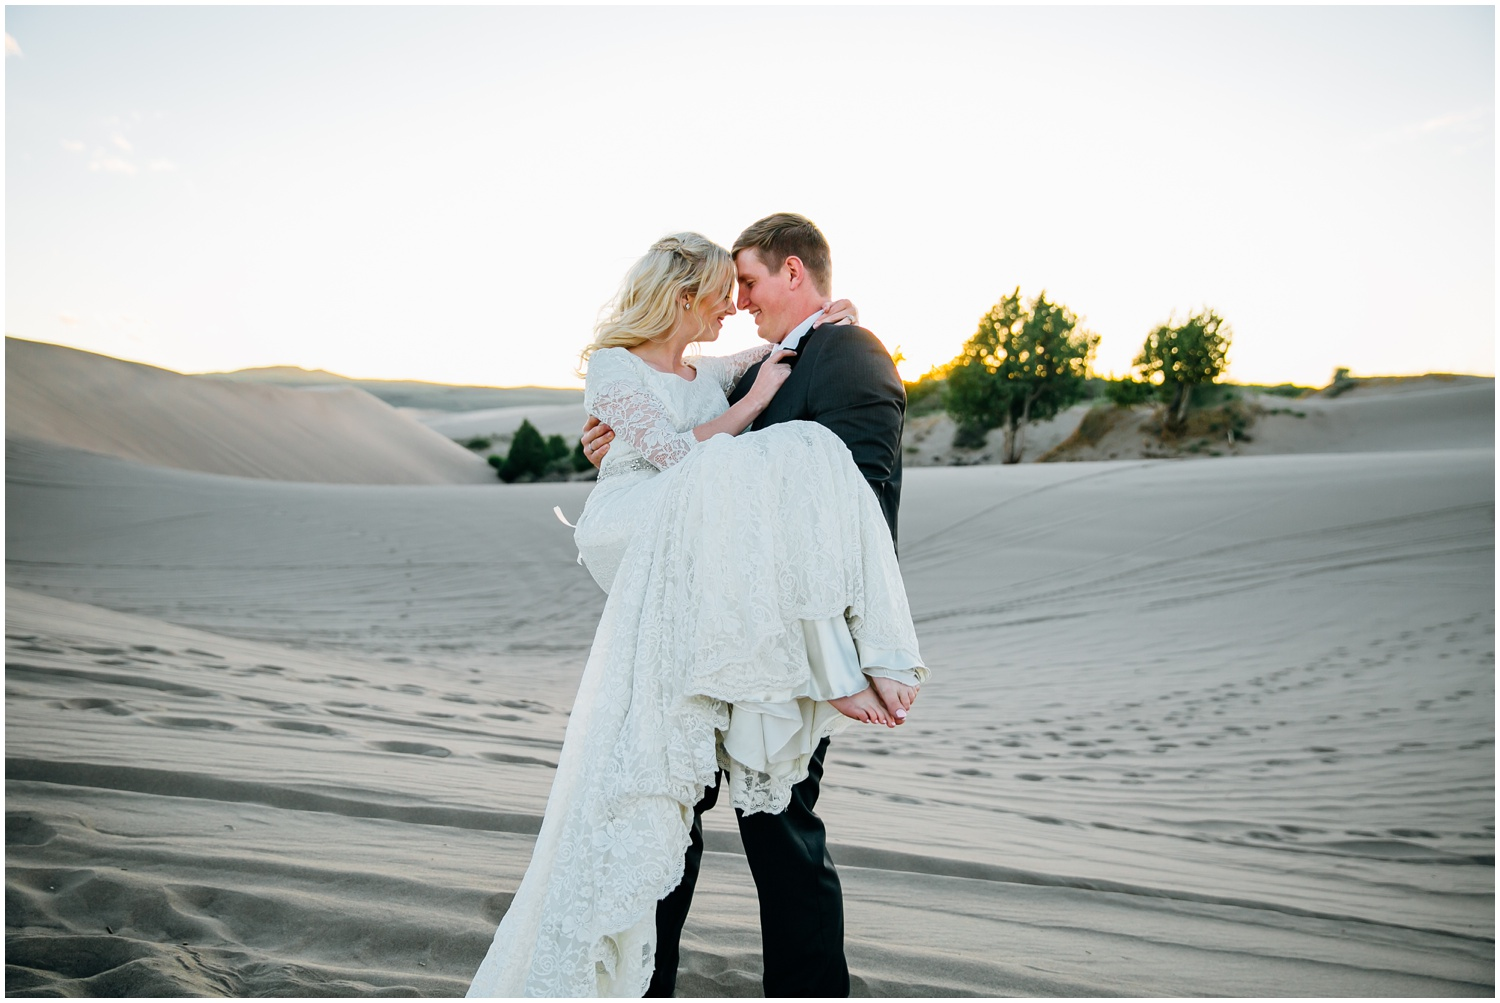 saint-anthony-sand-dunes-bridals-idaho-engagements-colorado-wyoming-wedding-photographer_0751.jpg